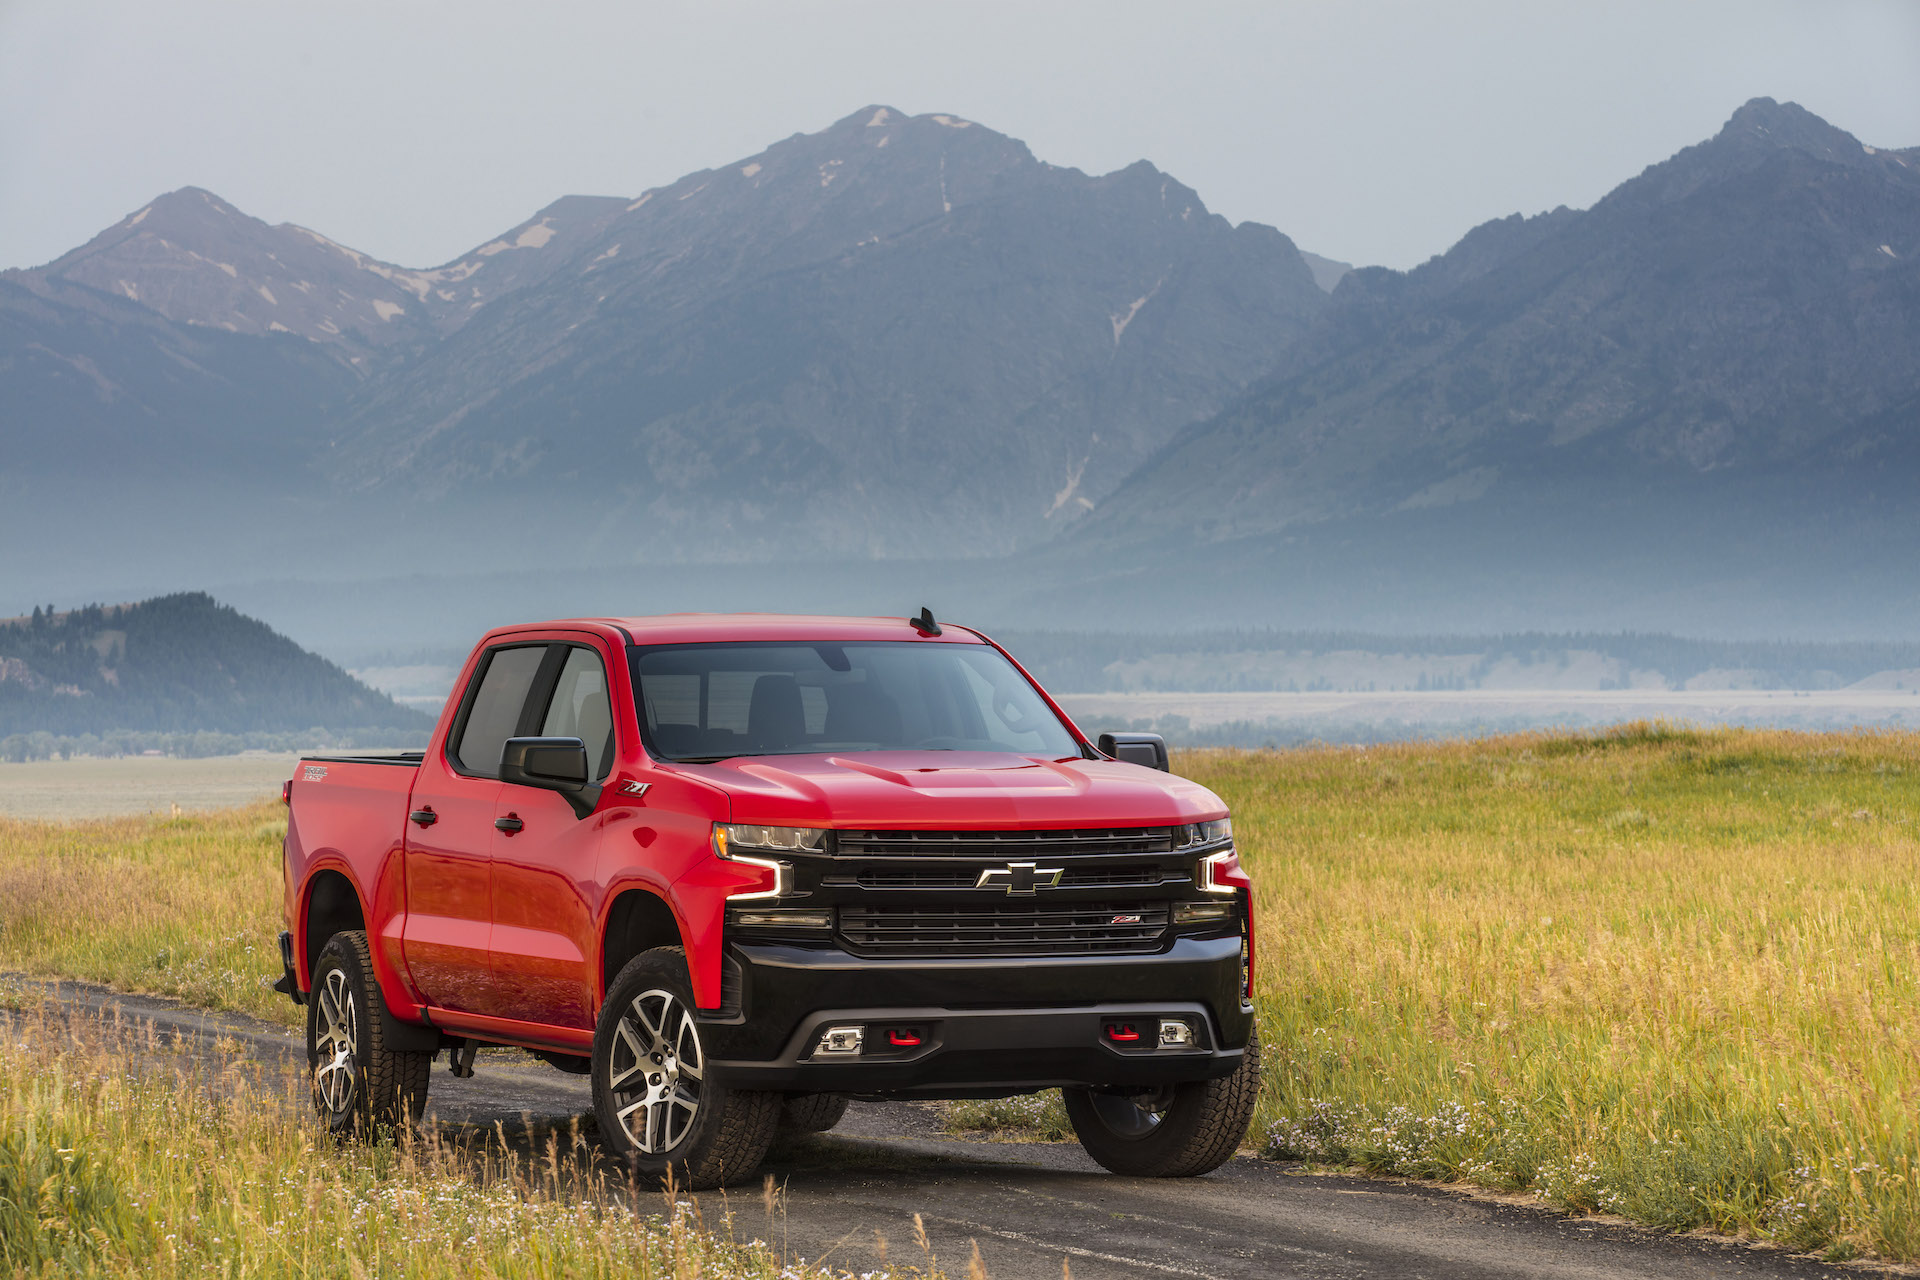 Top christmas gift ideas for her 2019 chevy